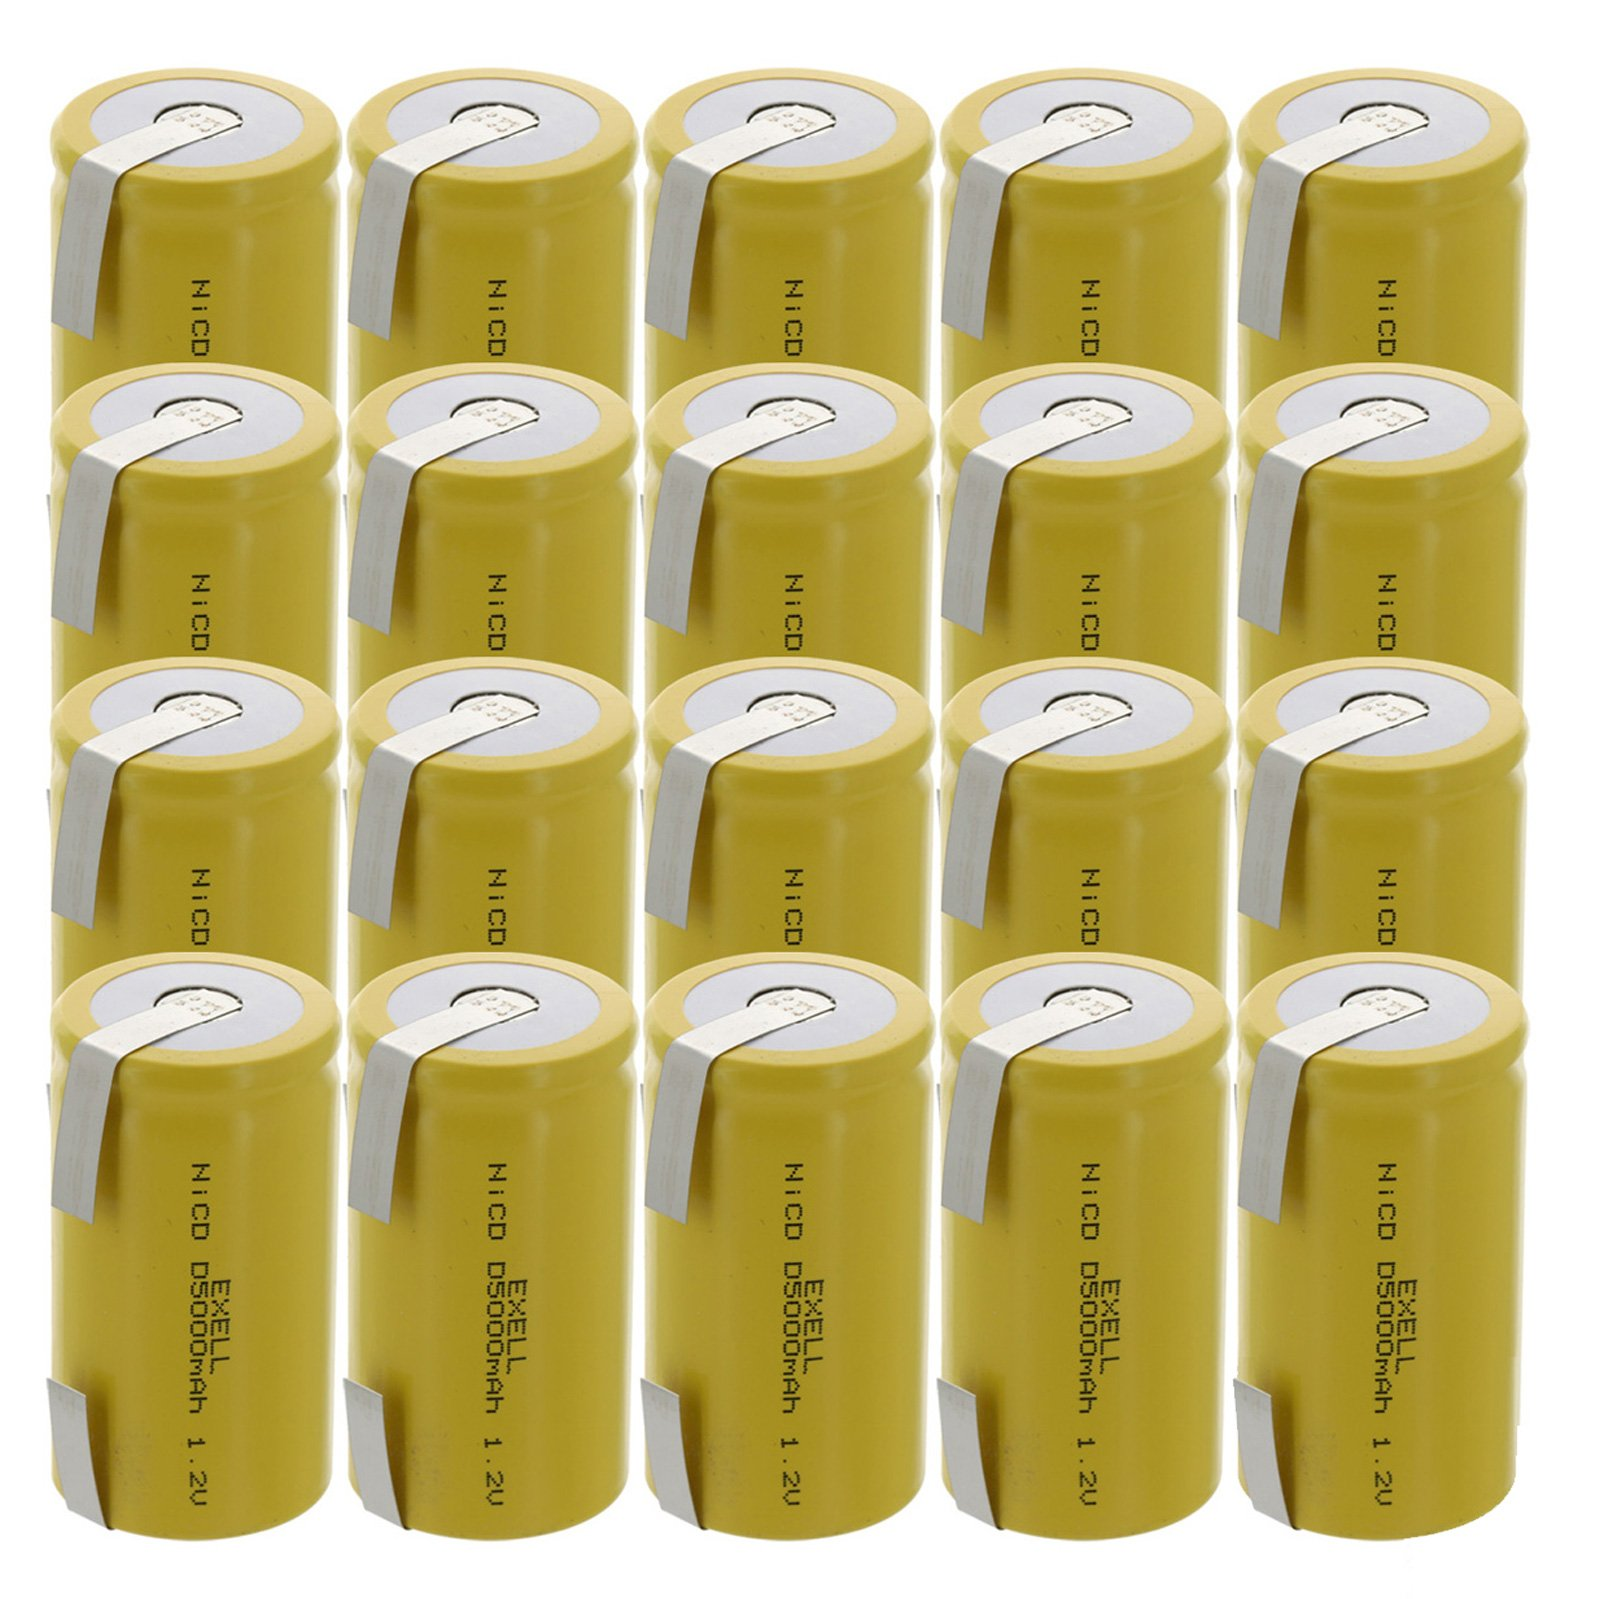 20x Exell D Size 1.2V 5000mAh NiCD Rechargeable Batteries with Tabs for medical instruments/equipment, electric razors, toothbrushes, radio controlled devices, electric tools by Exell Battery (Image #1)